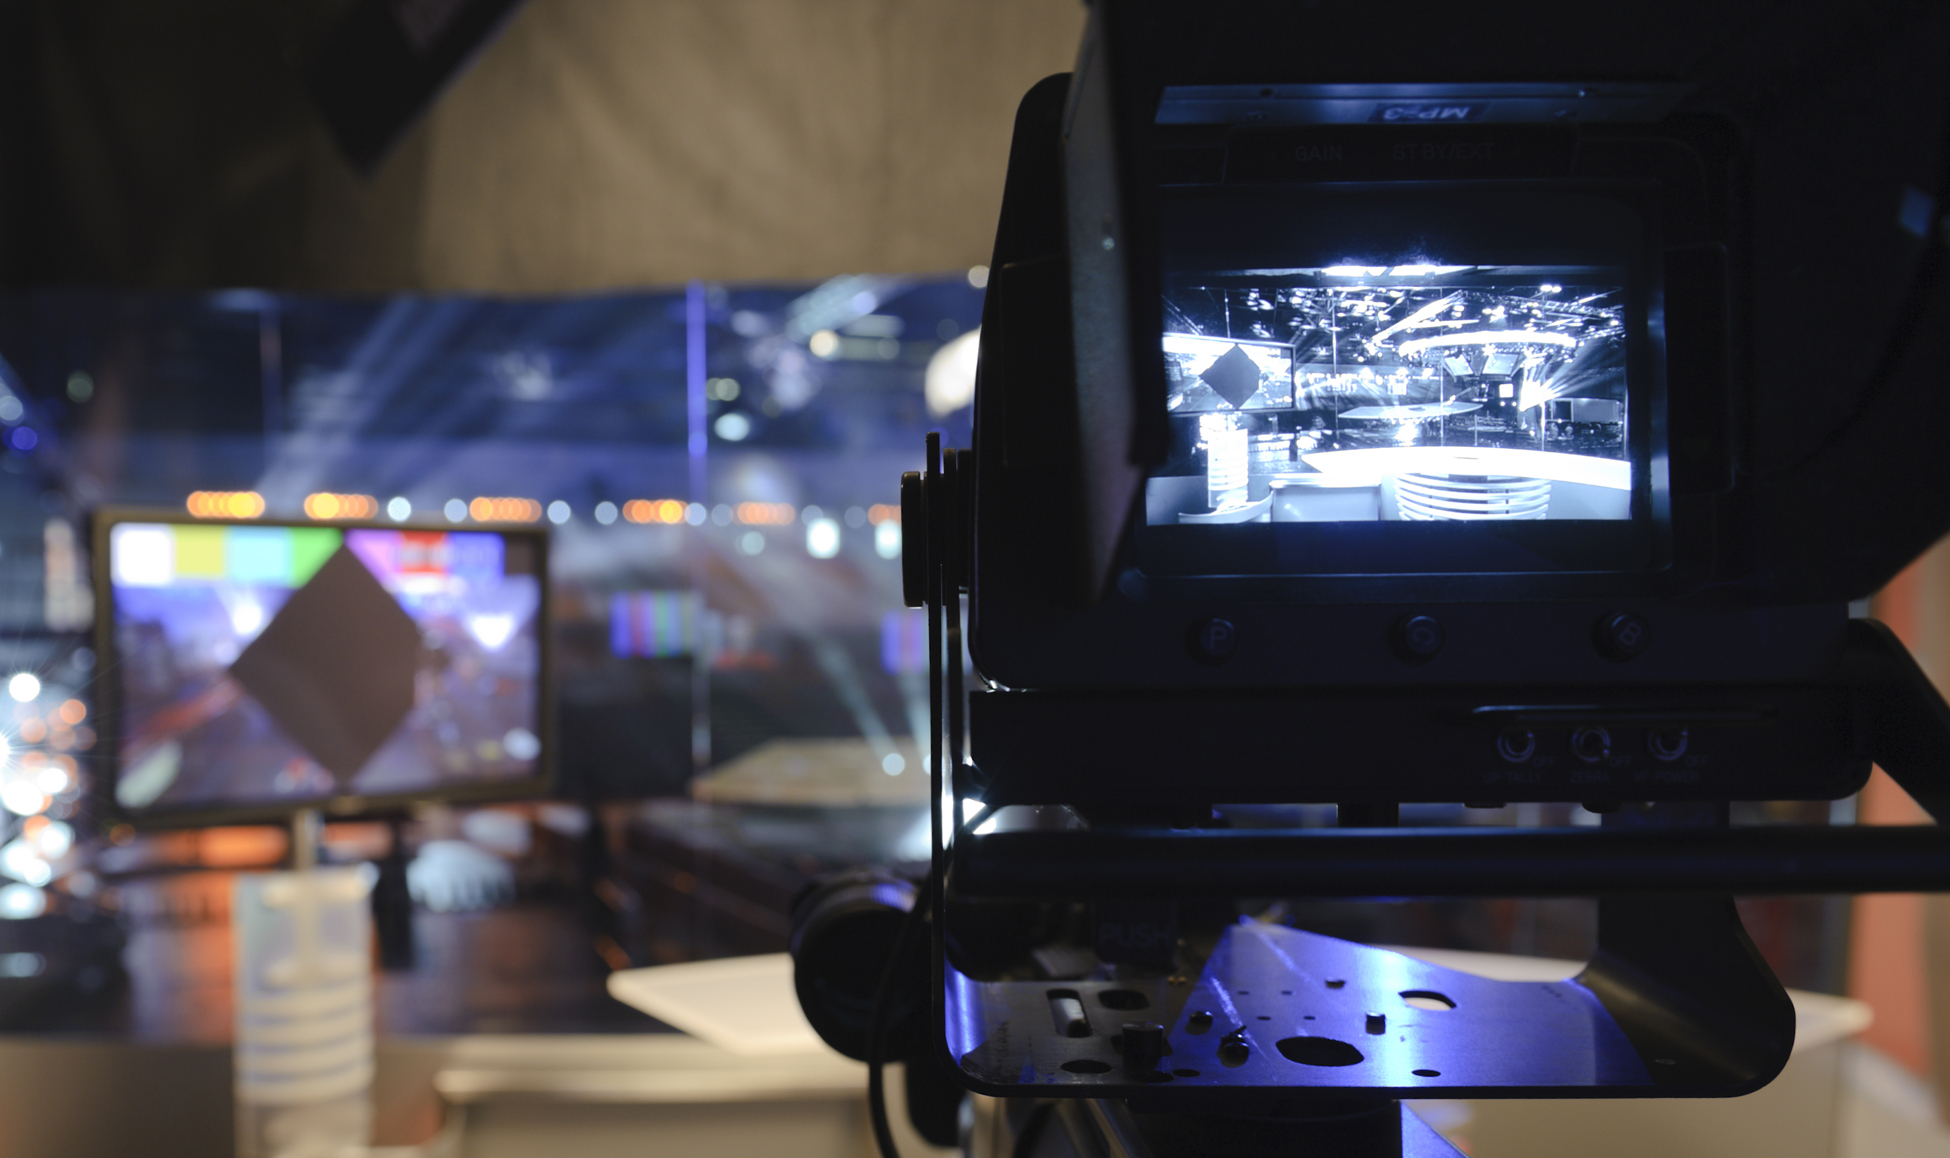 camera pointing at TV studio potential press opportunity